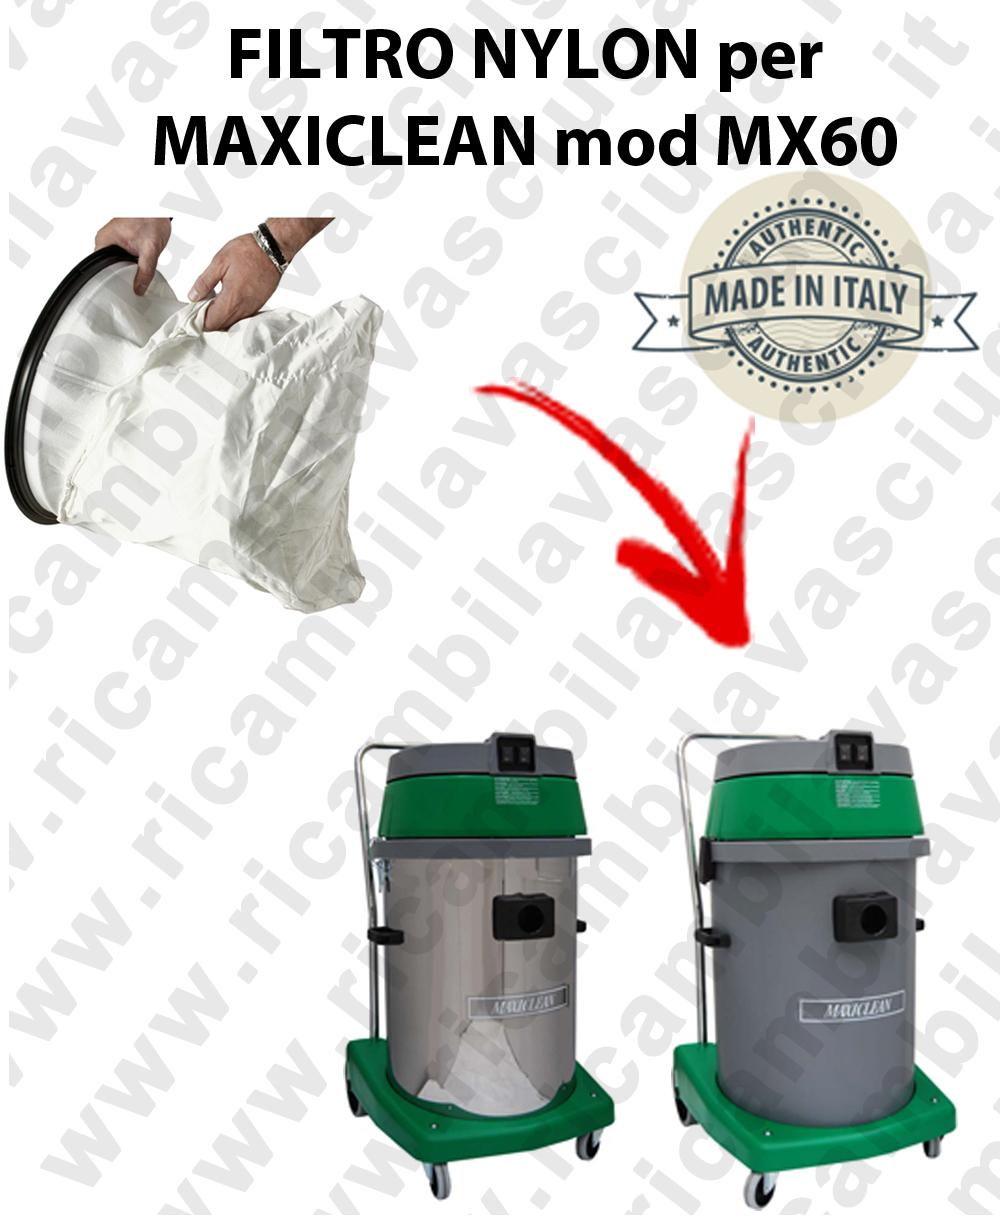 SAC FILTRE NYLON cod: 3001220 pour aspirateur MAXICLEAN Reference MX60 BY SYNCLEAN